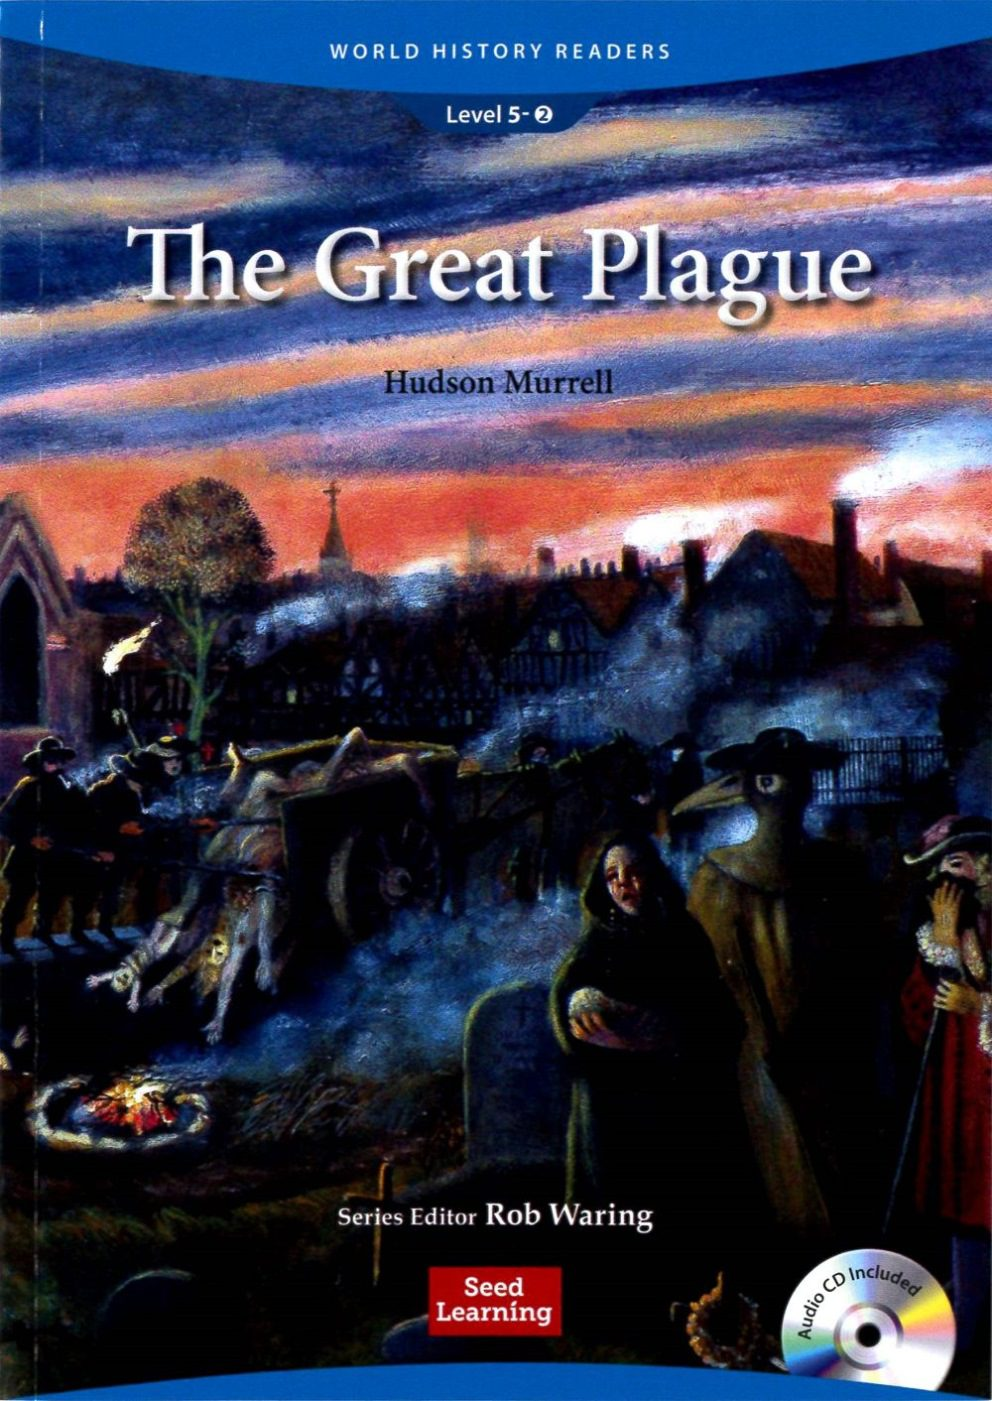 the history of the great plague The great plague plague had been around in england for centuries but in 1665 it was stuart london that suffered this was the worst outbreak of plague in england since the black death of 1348.